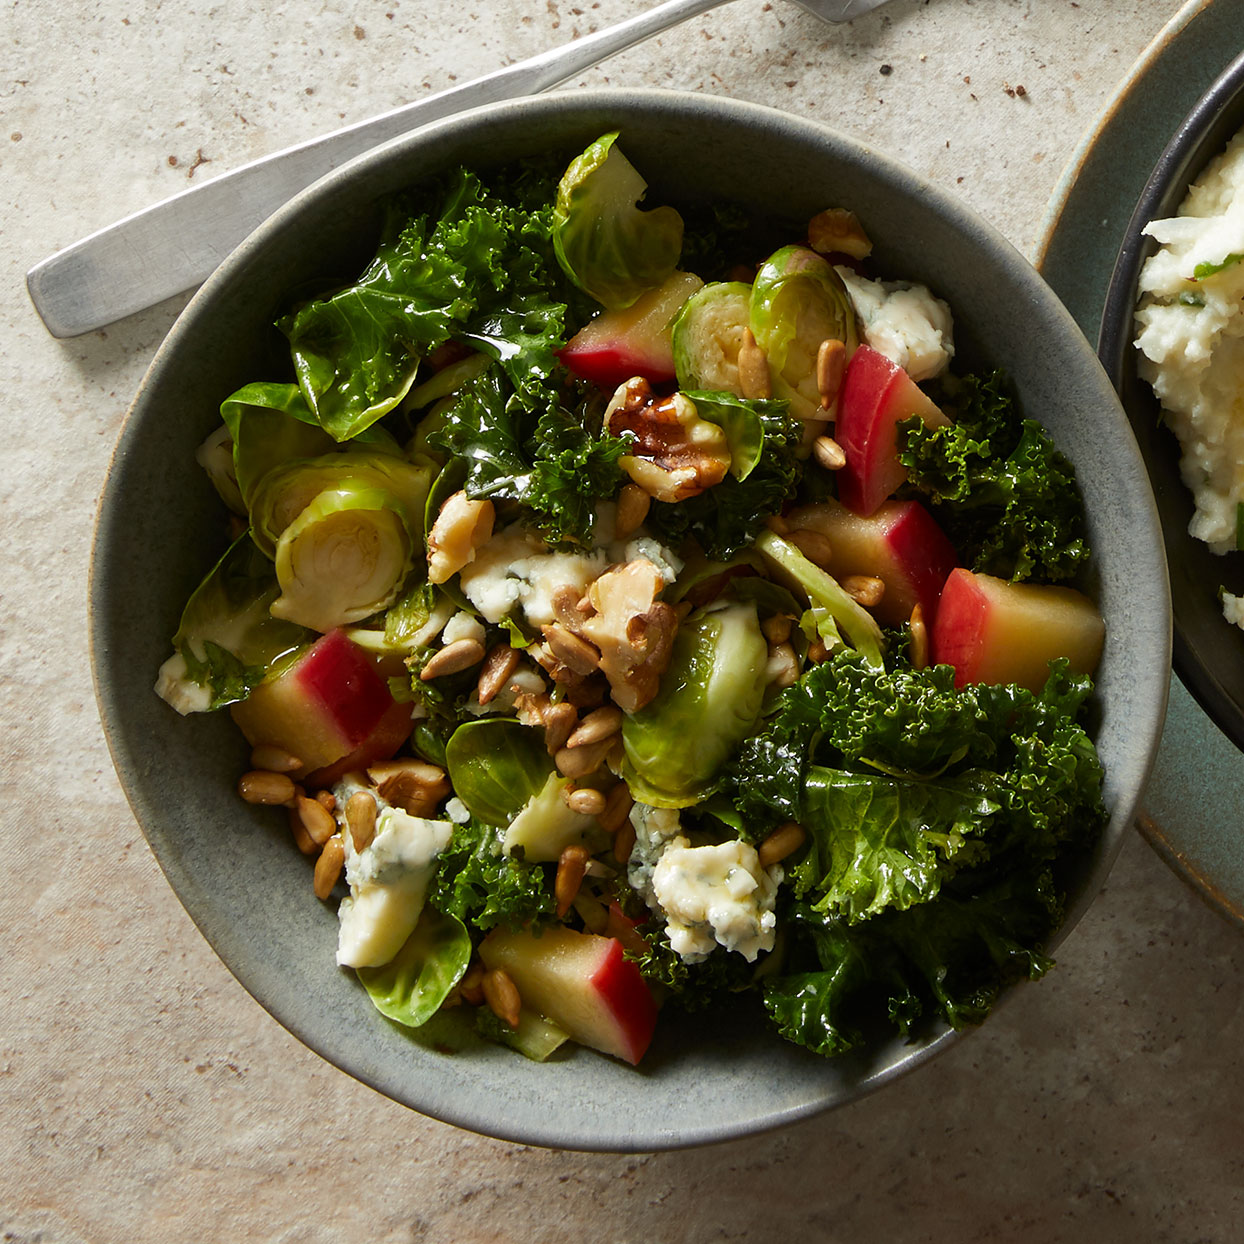 Wilted Greens with Warm Apple Vinaigrette Allrecipes Trusted Brands